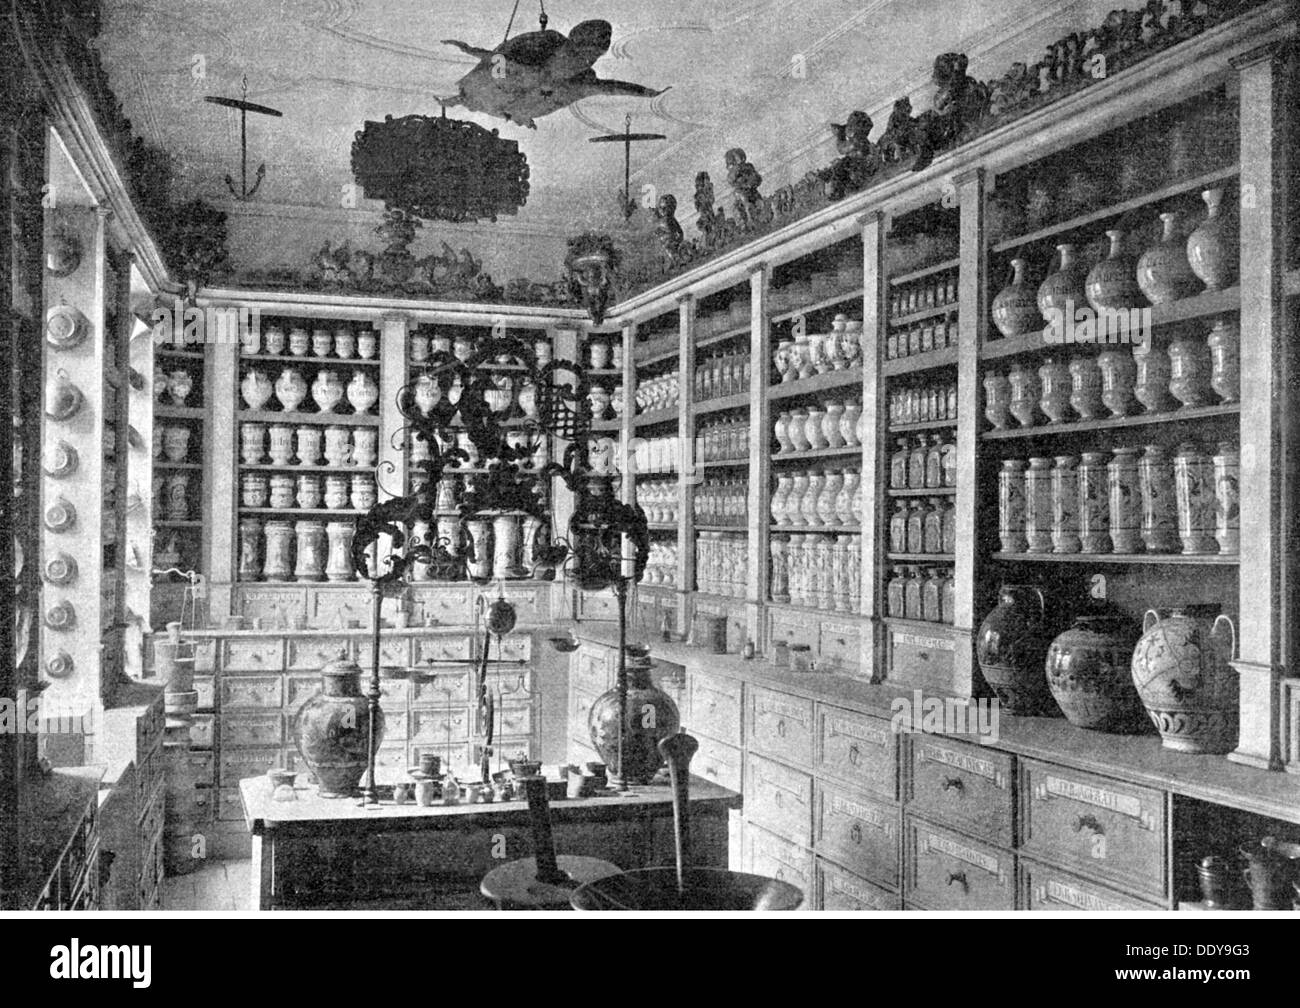 medicine, pharmacy, pharmacy, salesroom, National Museum of Germanic History, Nuremberg, 19th century, 19th century, sale, sales, selling, sell, medicinal drug, medicament, drugs, medication, pill, tablet, pills, tablets, retail store, retail outlet, retail stores, retail outlets, commerce, trade, economy, pharmaceuticals, pharmaceutical products, preparation, compound, pharmaceutical, remedy, remedies, pharmaceutics, pharmacology, shelf, shelves, vessel, vessels, medicine, medicines, pharmacy, pharmacies, drugstore, chemist's shop, drugstores, chemist's shops,, Additional-Rights-Clearences-NA - Stock Image